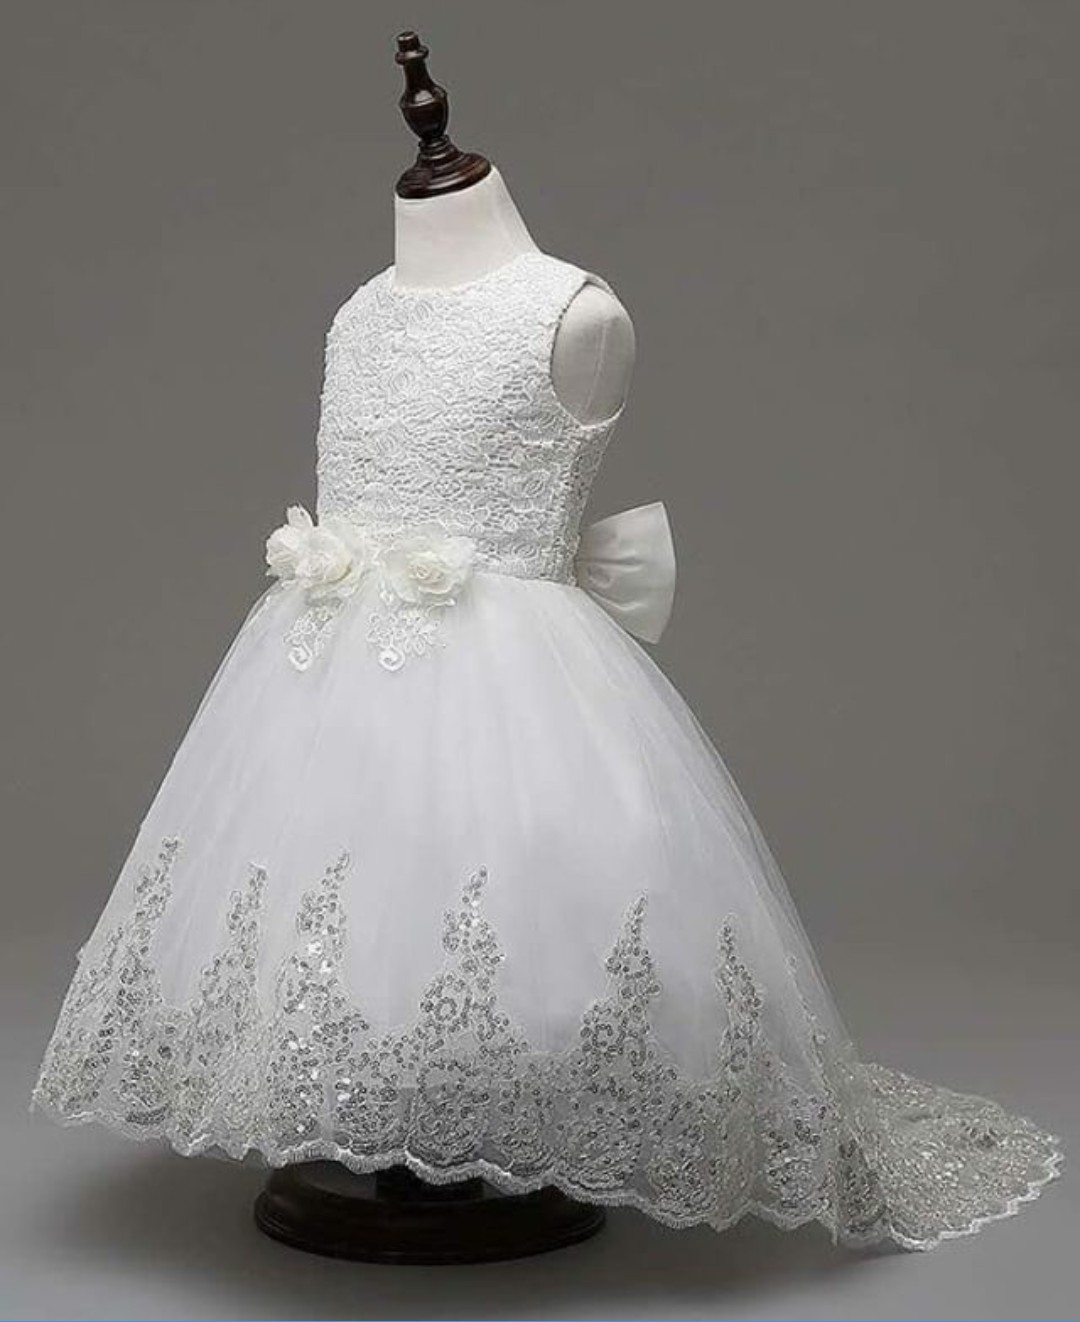 10 AMAZING CUTE GIRLS GOWNS STYLES 2020, YOU AND YOUR GIRL WILL LOVE THEM. 4